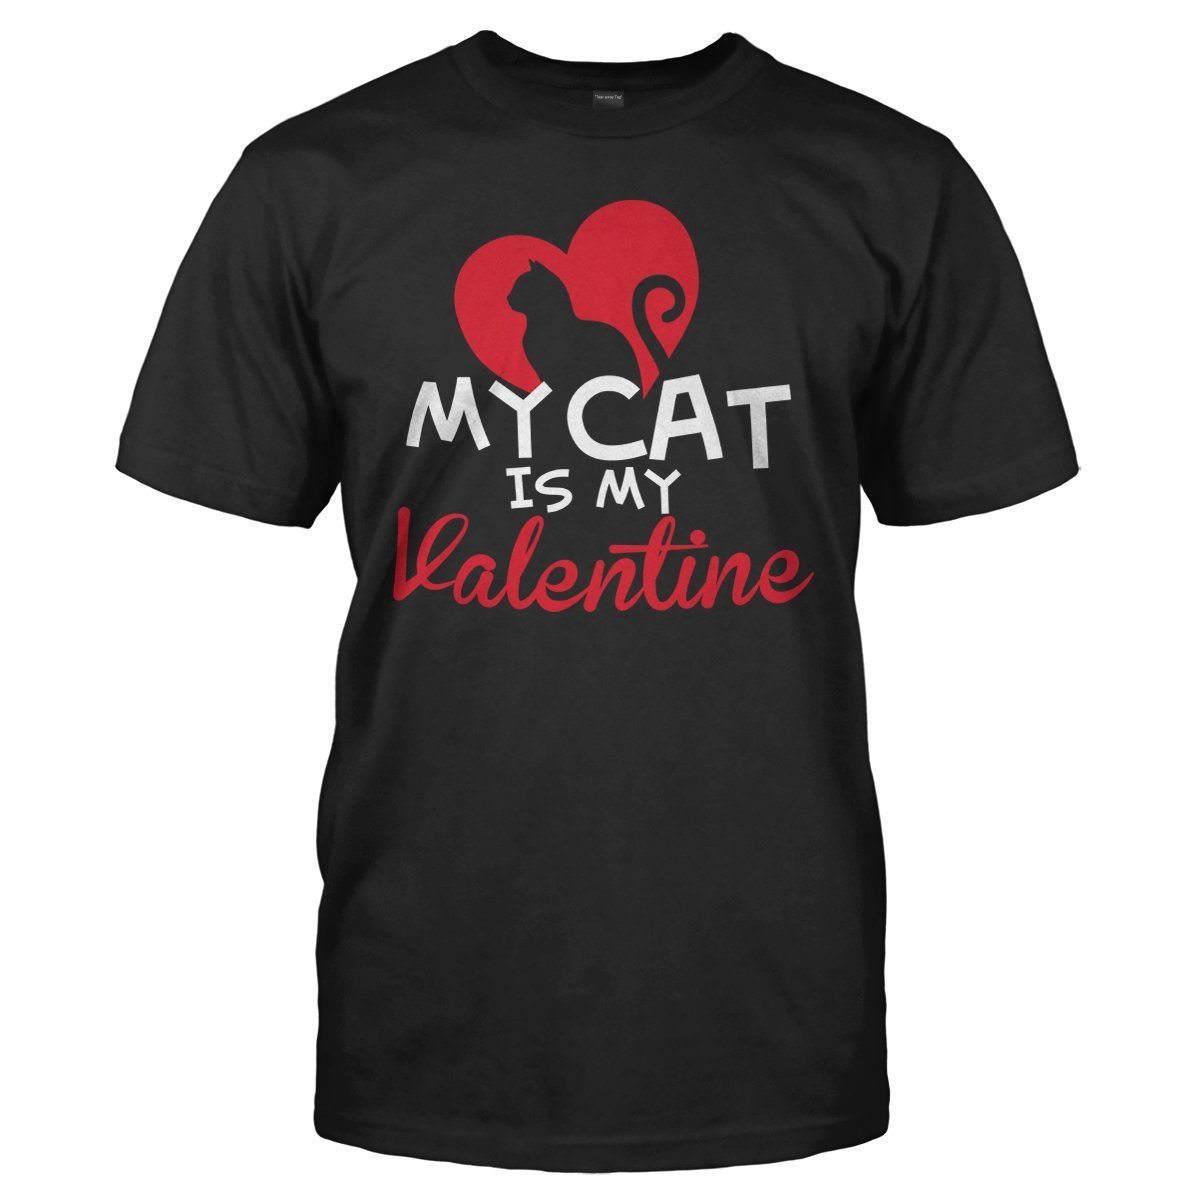 My Cat Is My Valentine - T Shirt